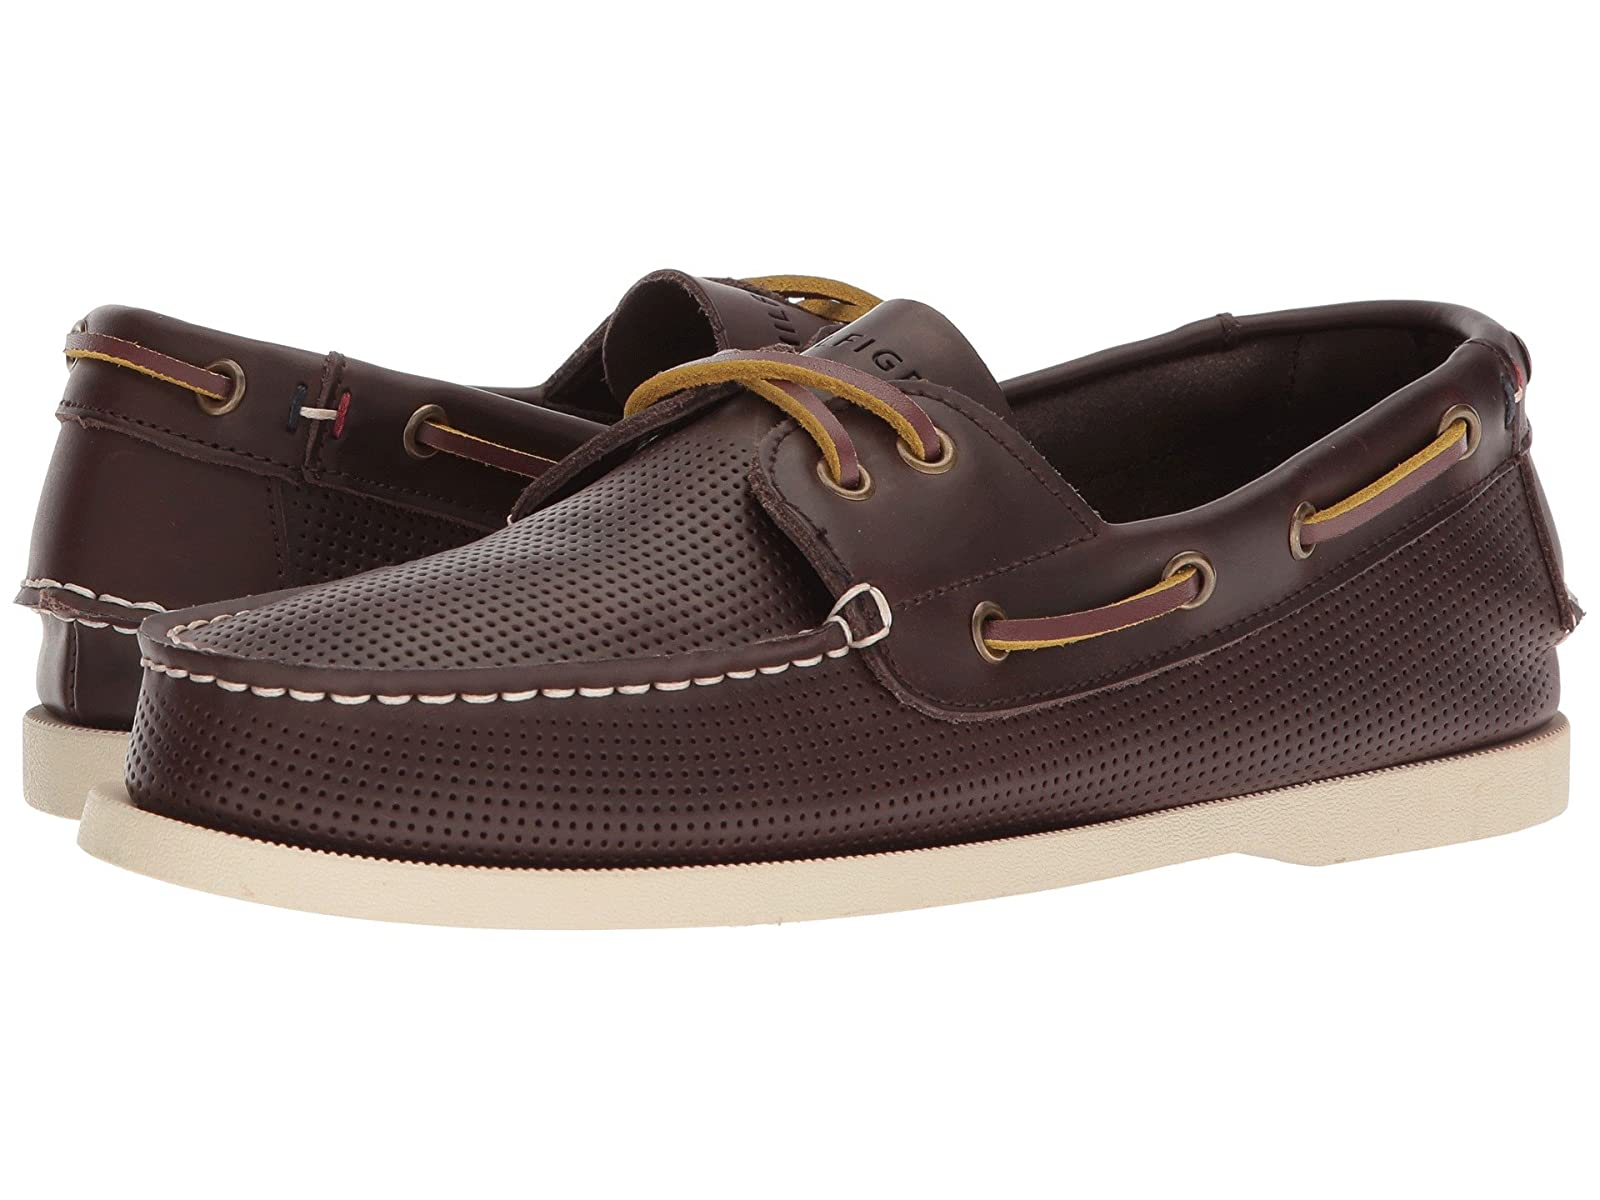 Tommy Hilfiger Bowman 8Selling fashionable and eye-catching shoes